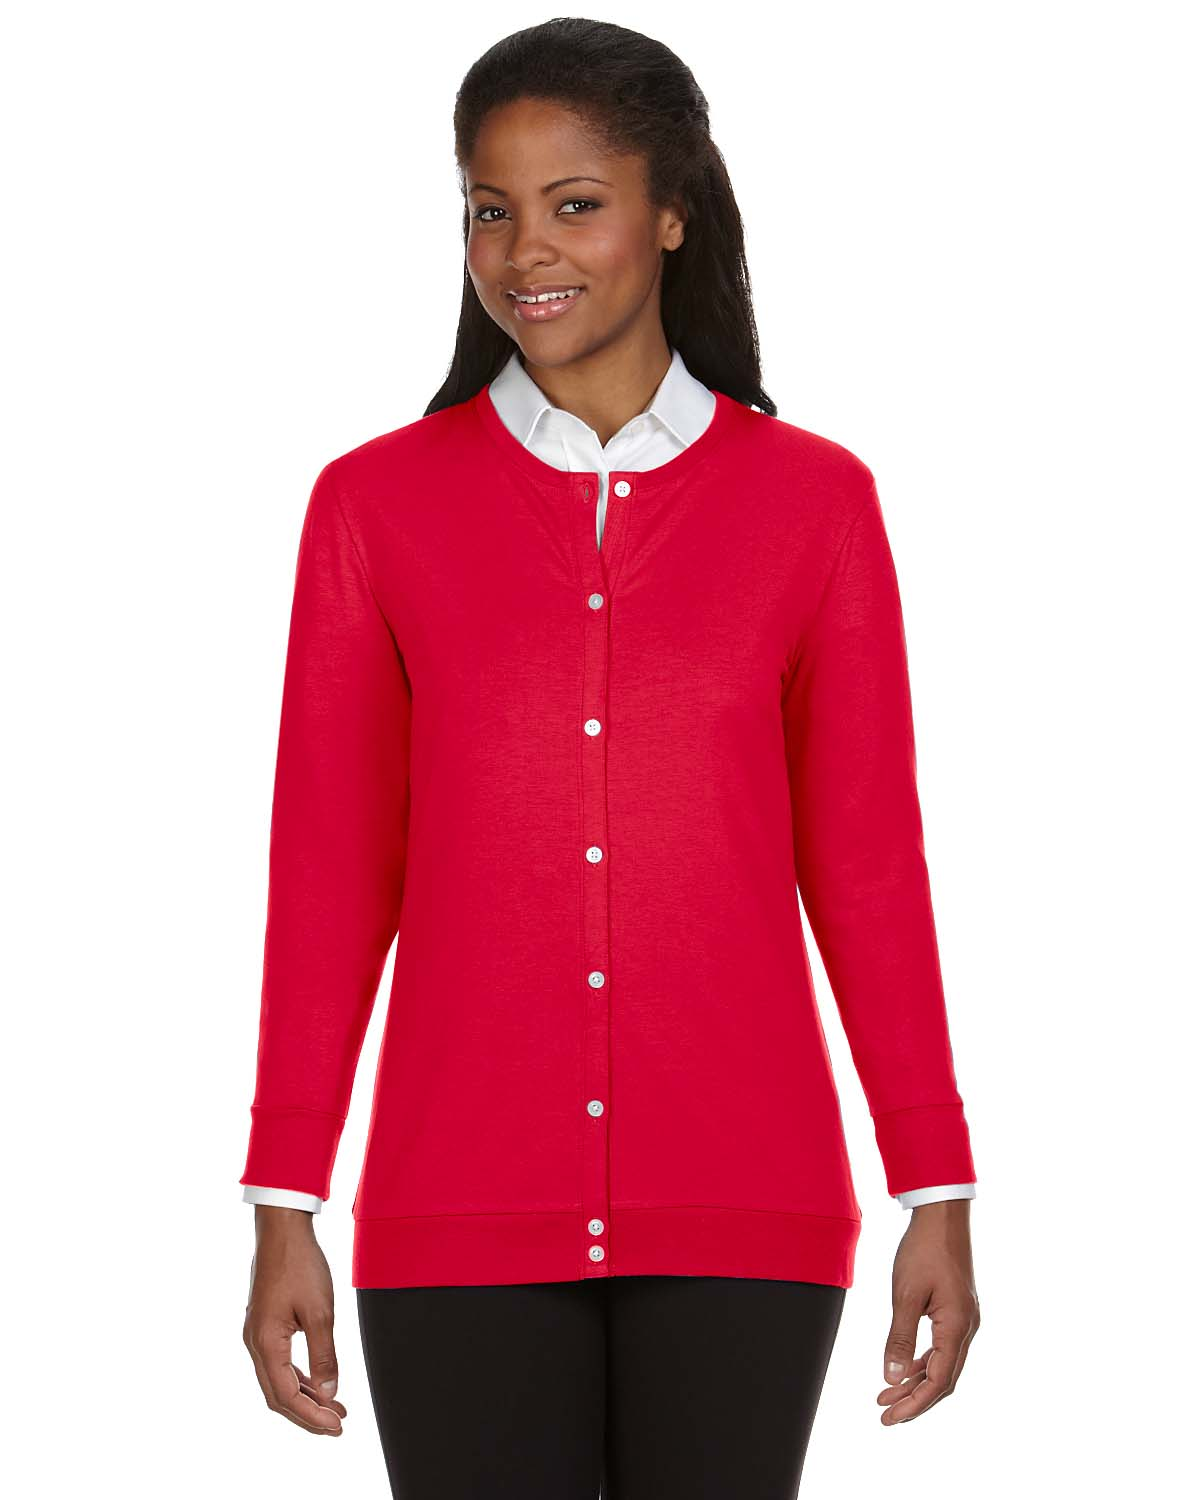 Devon & Jones Dp181w Ladies' Fit Ribbon Cardigan S Red | eBay